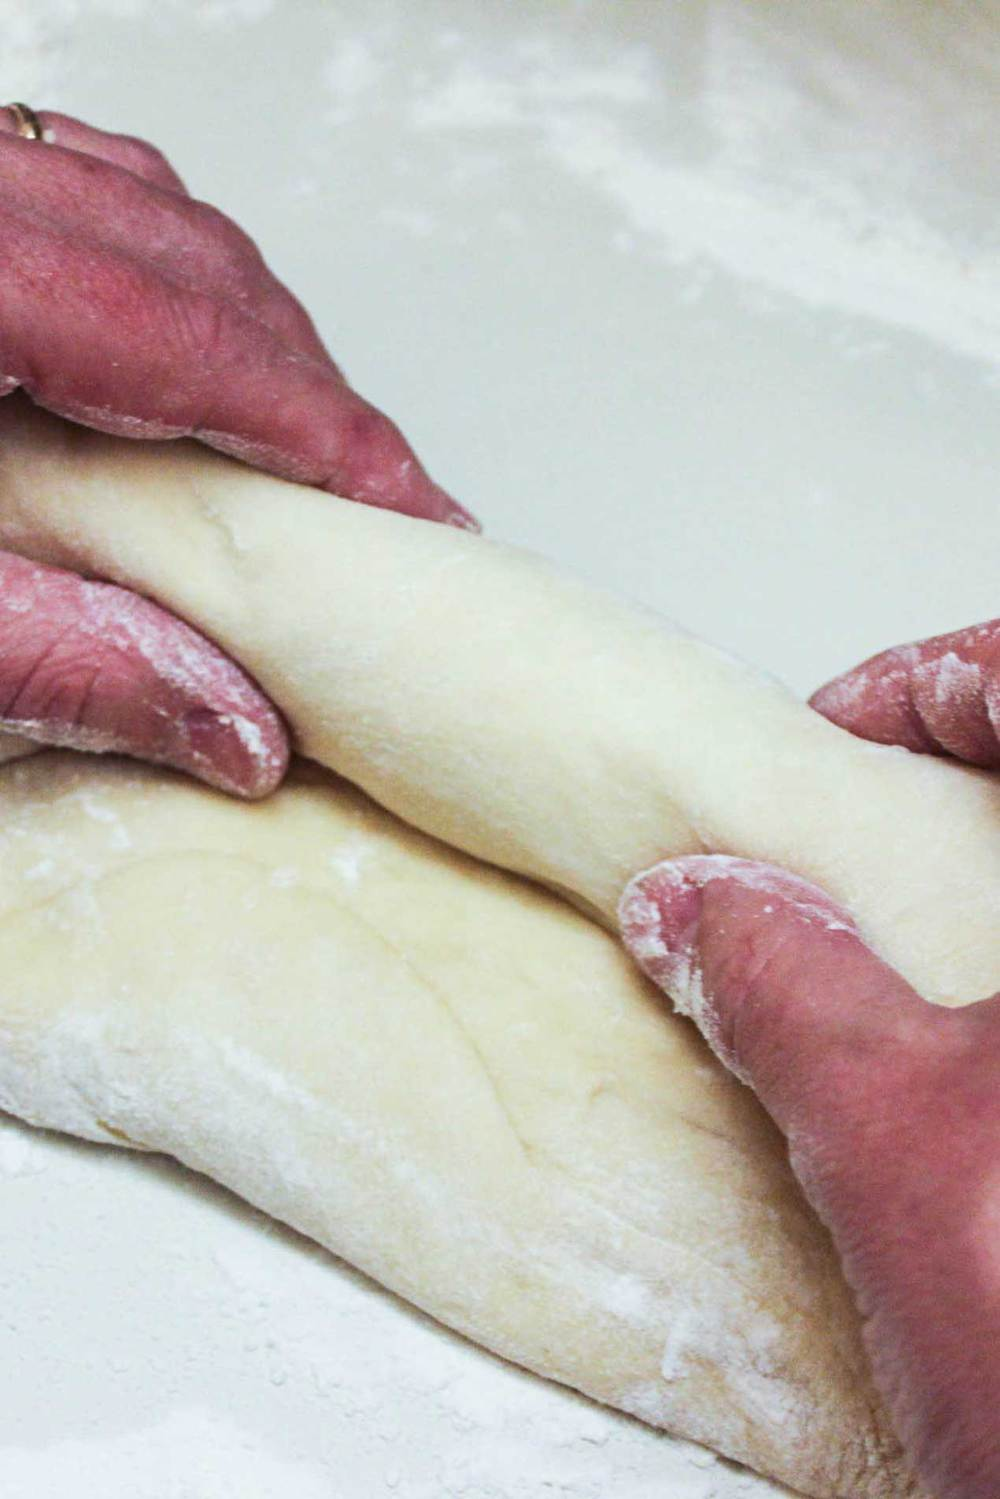 Homemade Country white bread dough being rolled by two hands